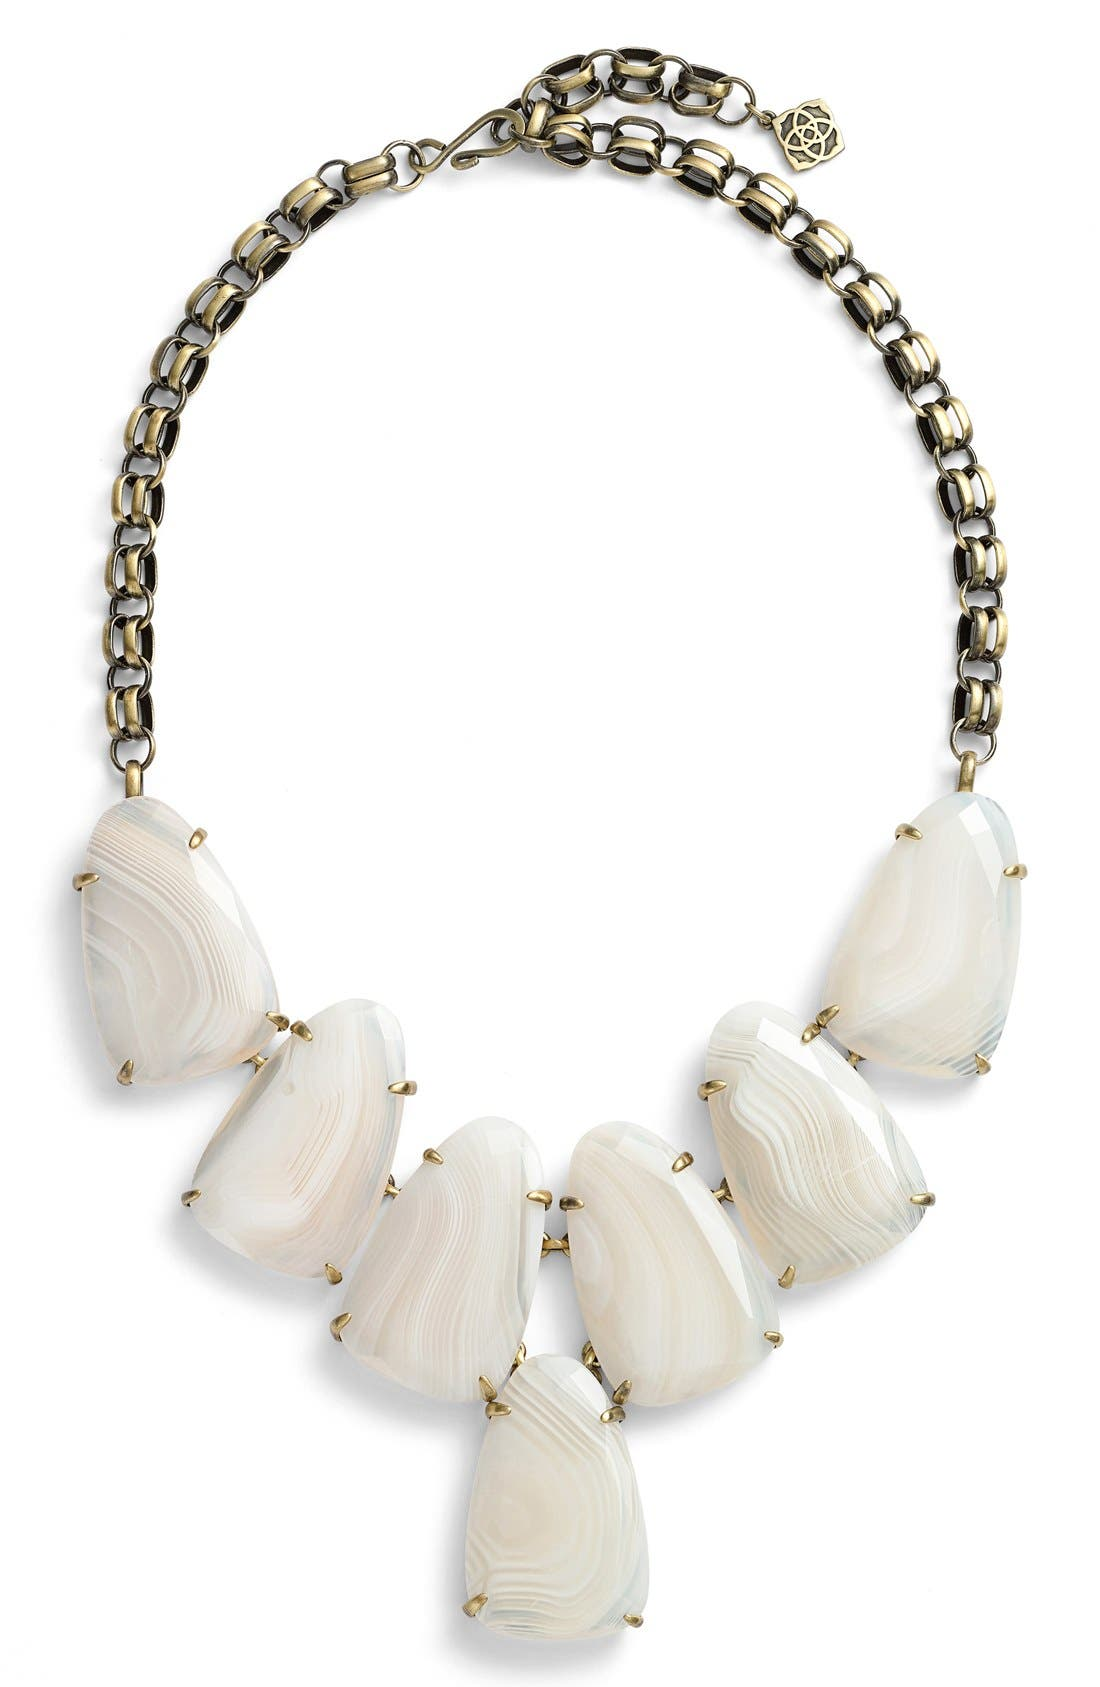 Harlow Necklace,                         Main,                         color, White Banded Agate/ Brass